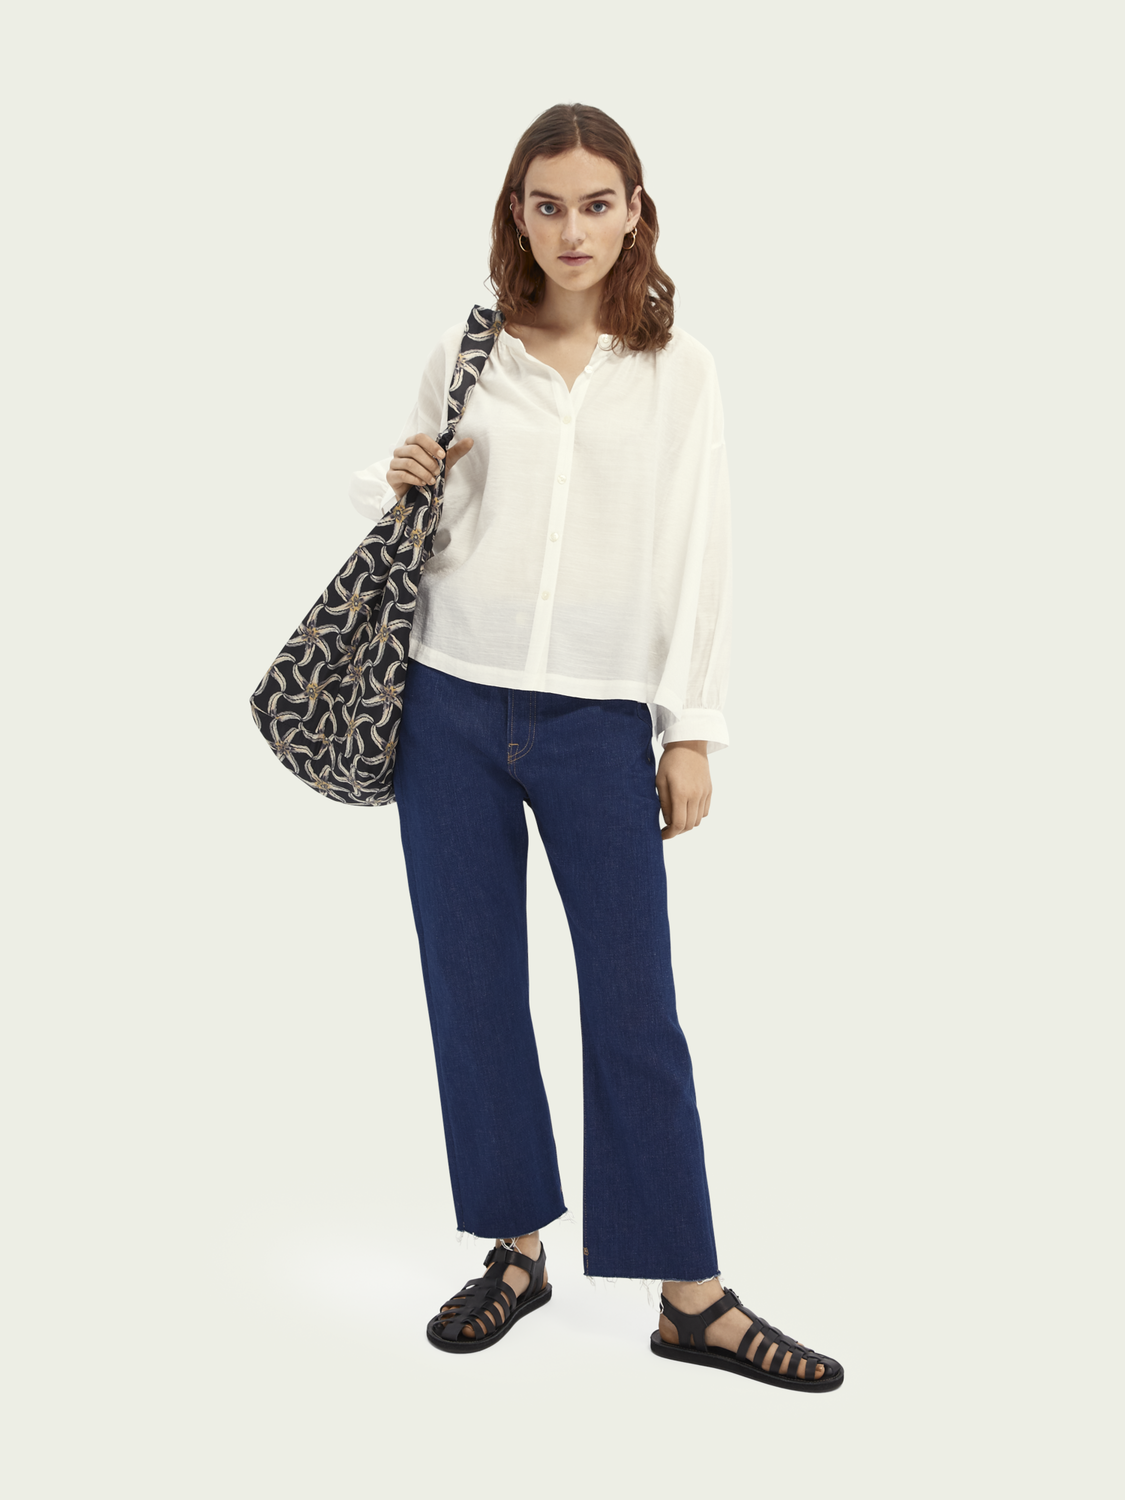 Damen Button-down-Shirt aus TENCEL™-ECOVERO™-Mischung